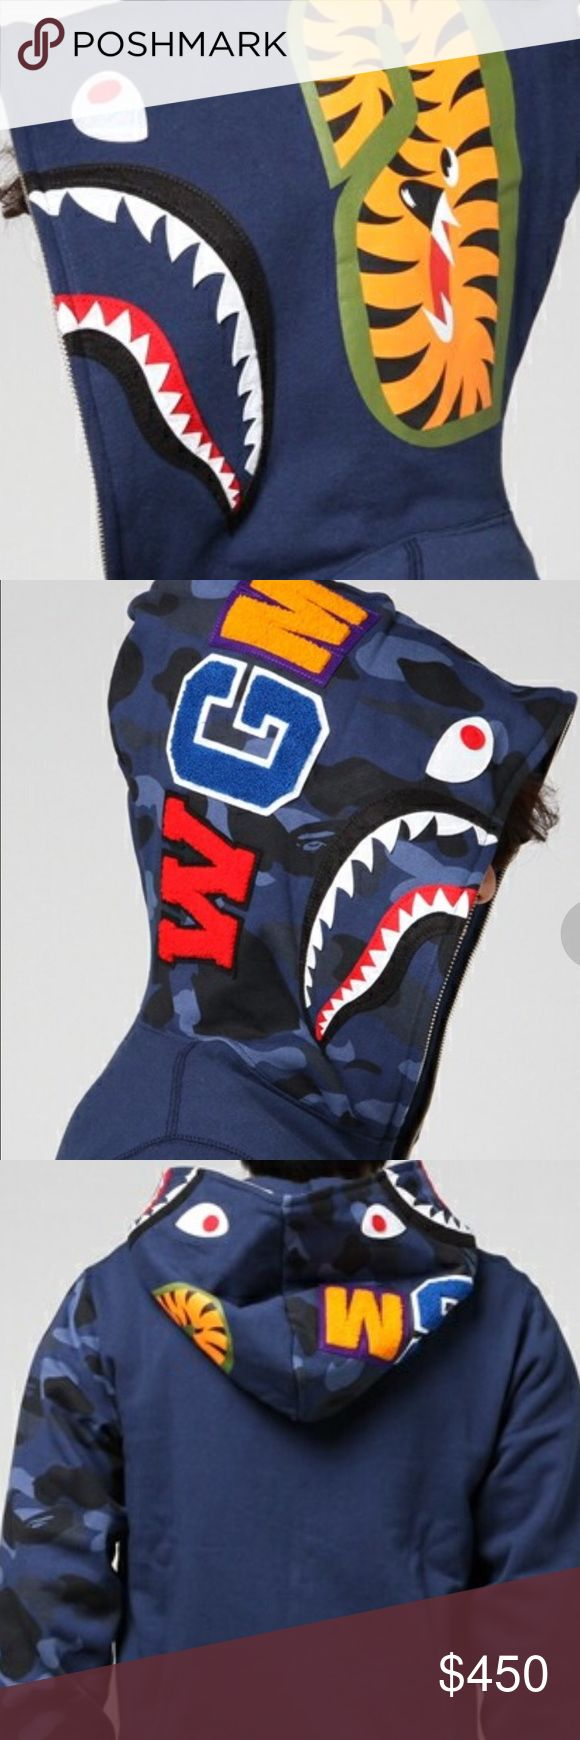 "A Bathing Ape, BAPE, Camo Shark Full Zip Hoodie A lineup that dropped the original camouflage pattern ""COLOR CAMO"" with vivid coloring eye-catching. A popular Shark motif is designed and you can taste the taste of BAPE to its fullest. 100% Authentic, Imported from Japan. Tagged as XL fits like L. A Bathing Ape, BAPE Shirts Sweatshirts & Hoodies"